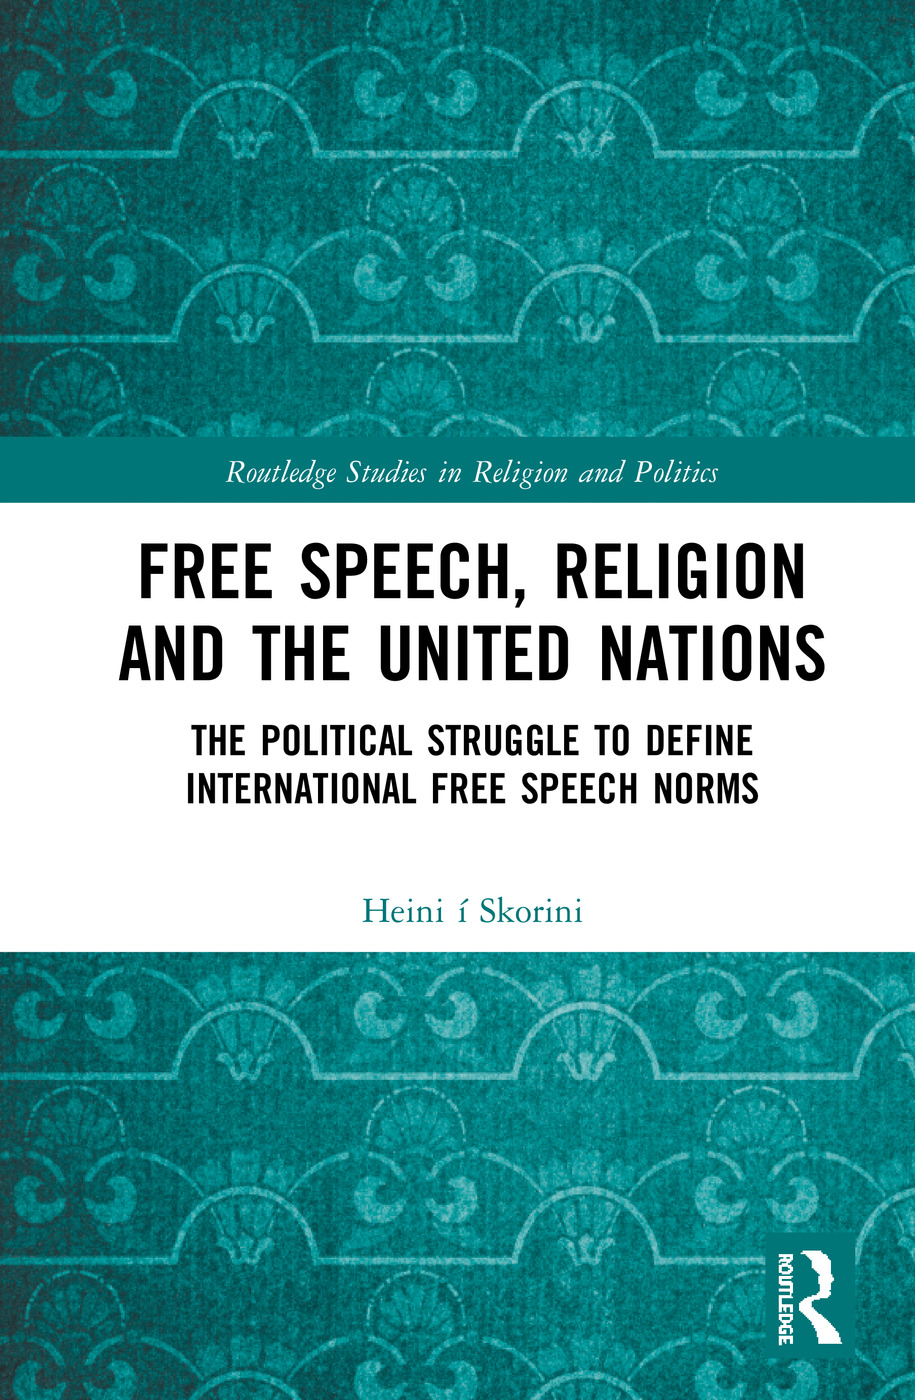 Free Speech, Religion and the United Nations: The Political Struggle to Define International Free Speech Norms book cover